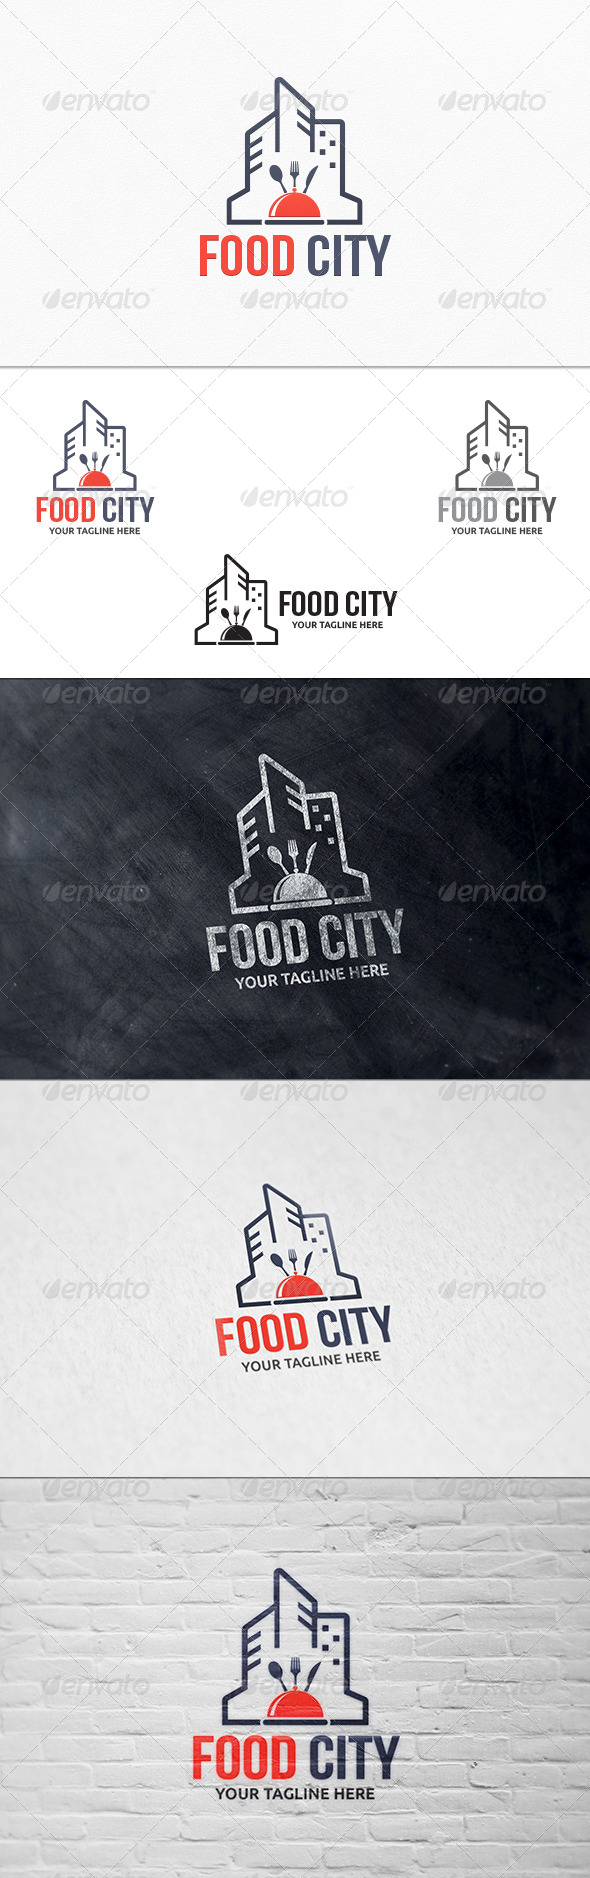 Food City - Logo Template